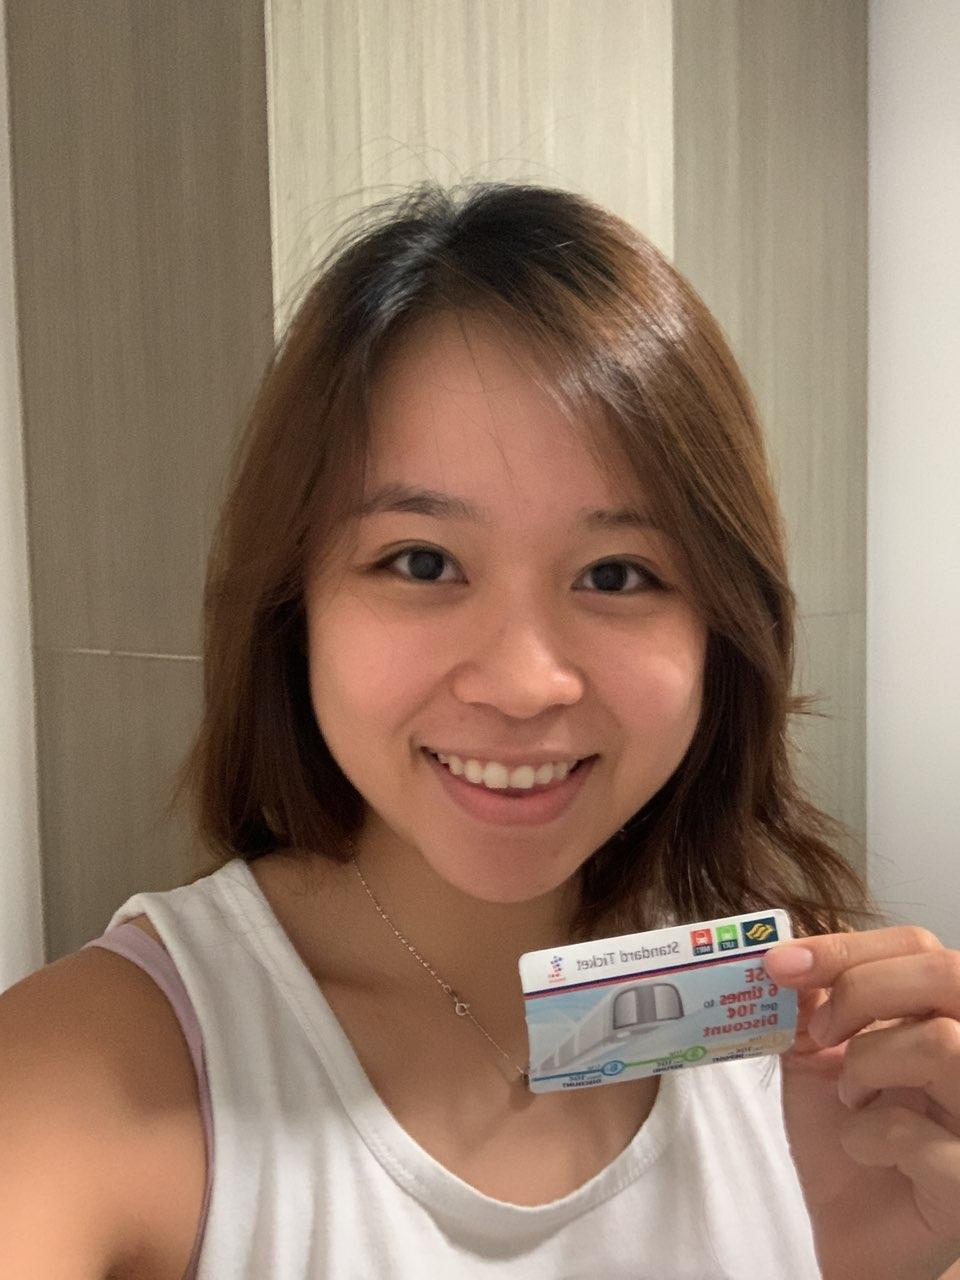 This made my day: MRT station staff gives own money to lost jogger for ride home, posted on Sunday, 07 June 2020